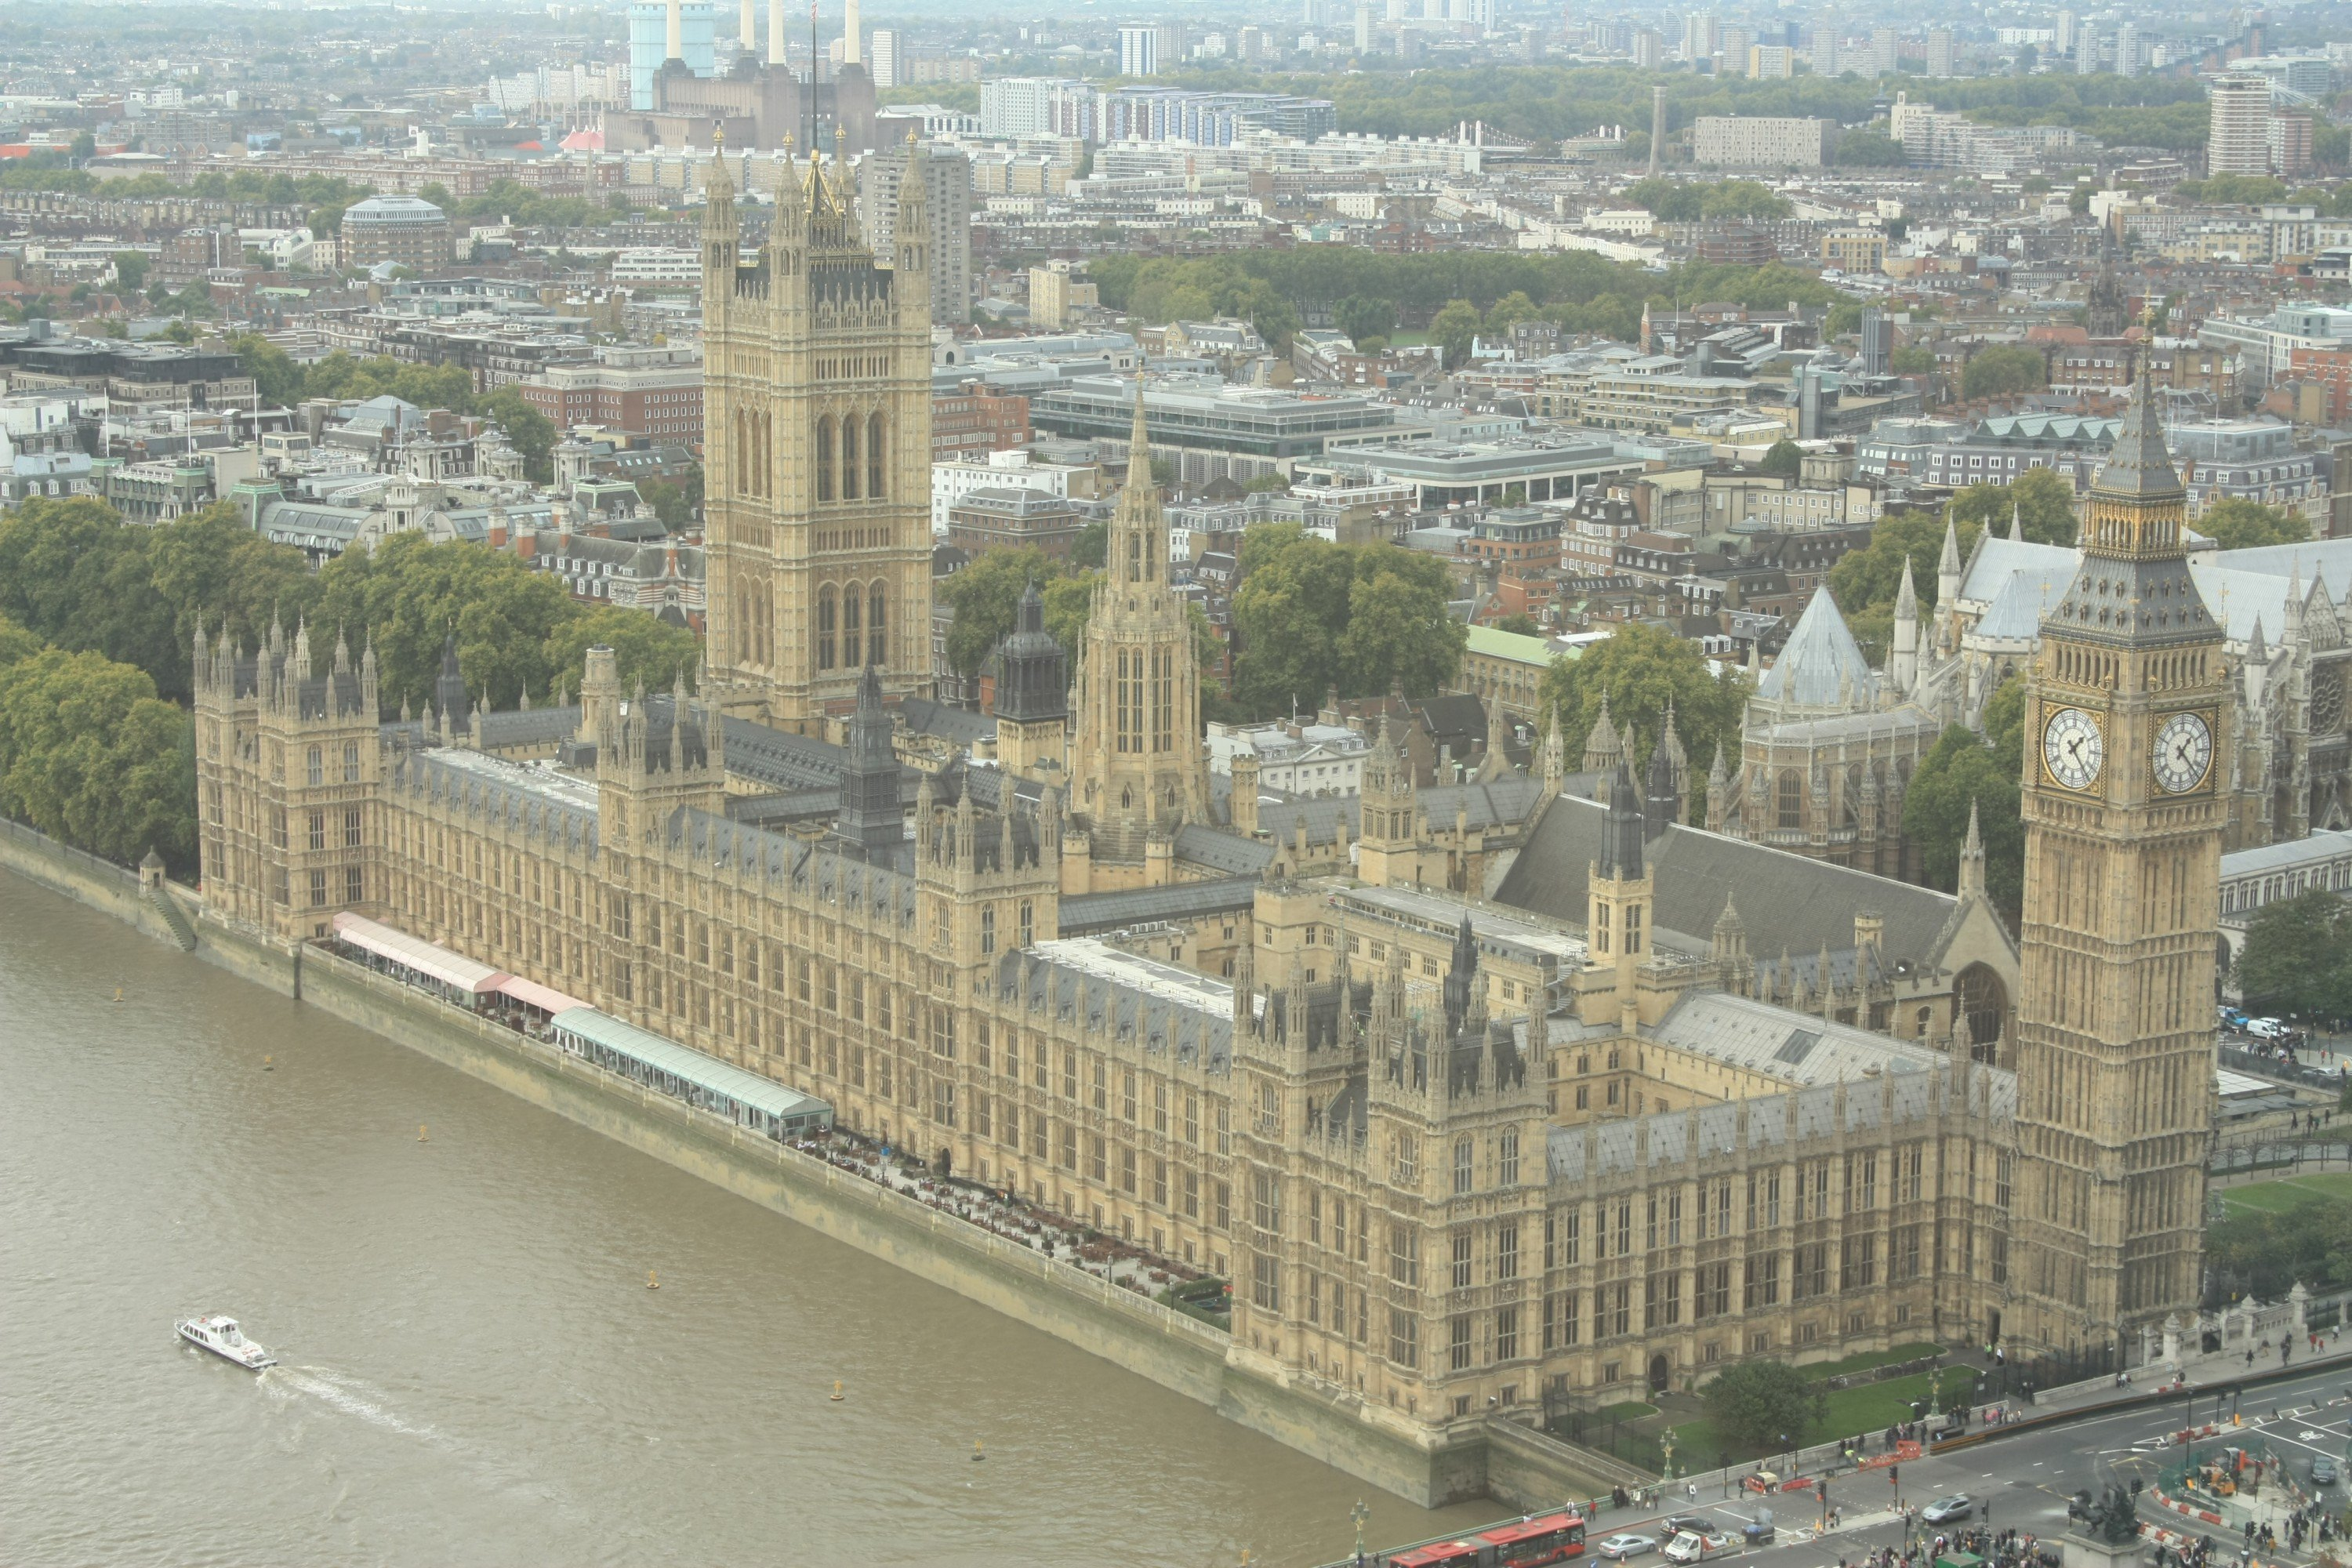 Houses of Parliament. UK MP's speech echoes Crisp Thinking in need for content moderation, social media moderation, online moderation. UGC moderation.